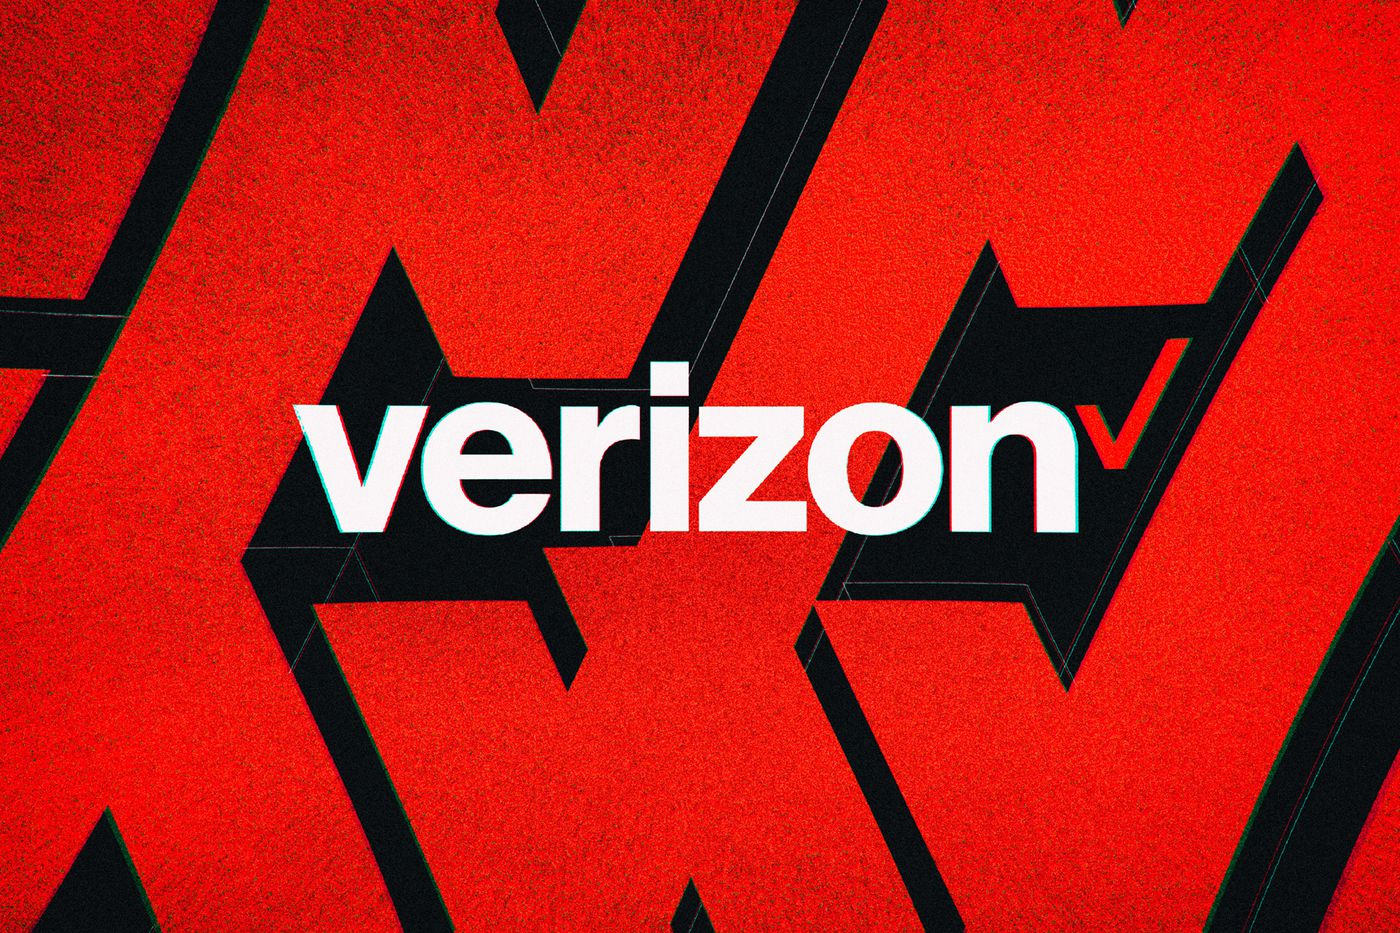 Verizon gives all mobile customers 15GB of extra data during coronavirus  pandemic - The Verge